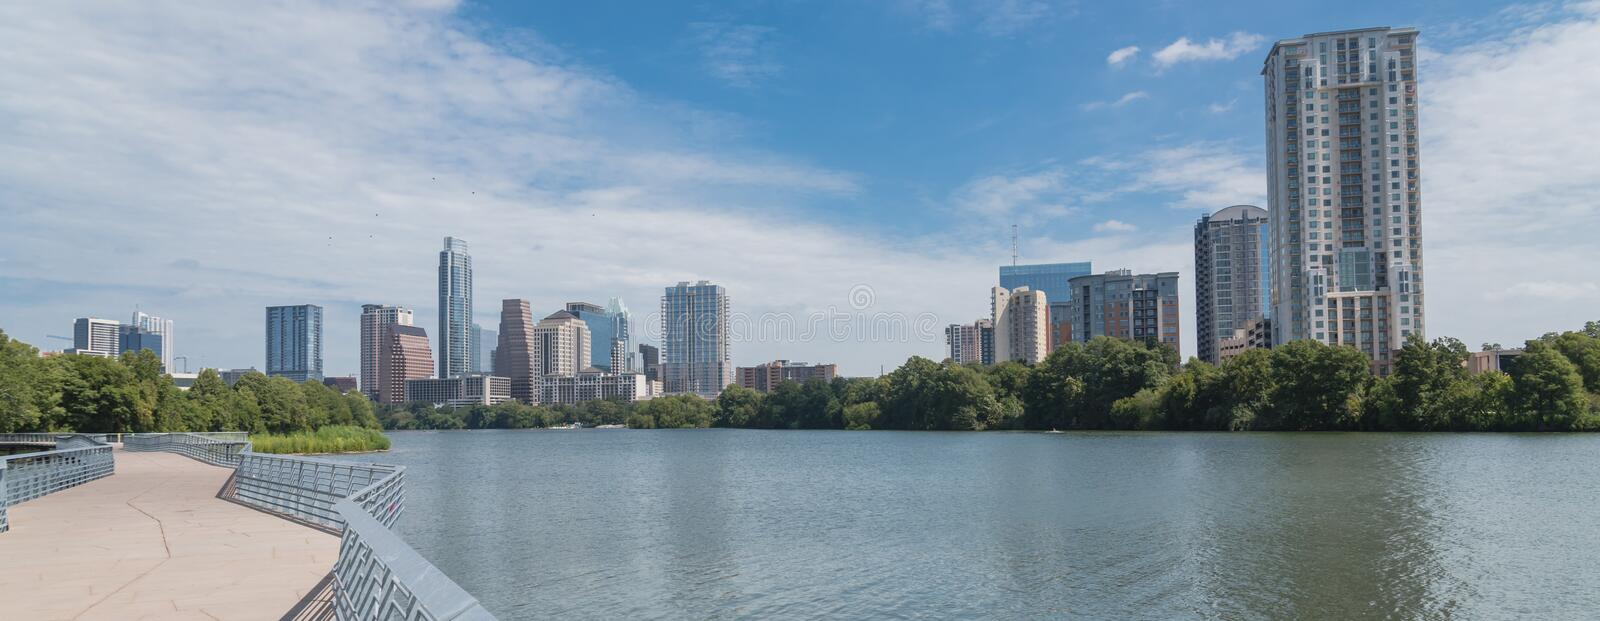 Panoramic Austin downtown skyscraper from boardwalk along Colora royalty free stock image